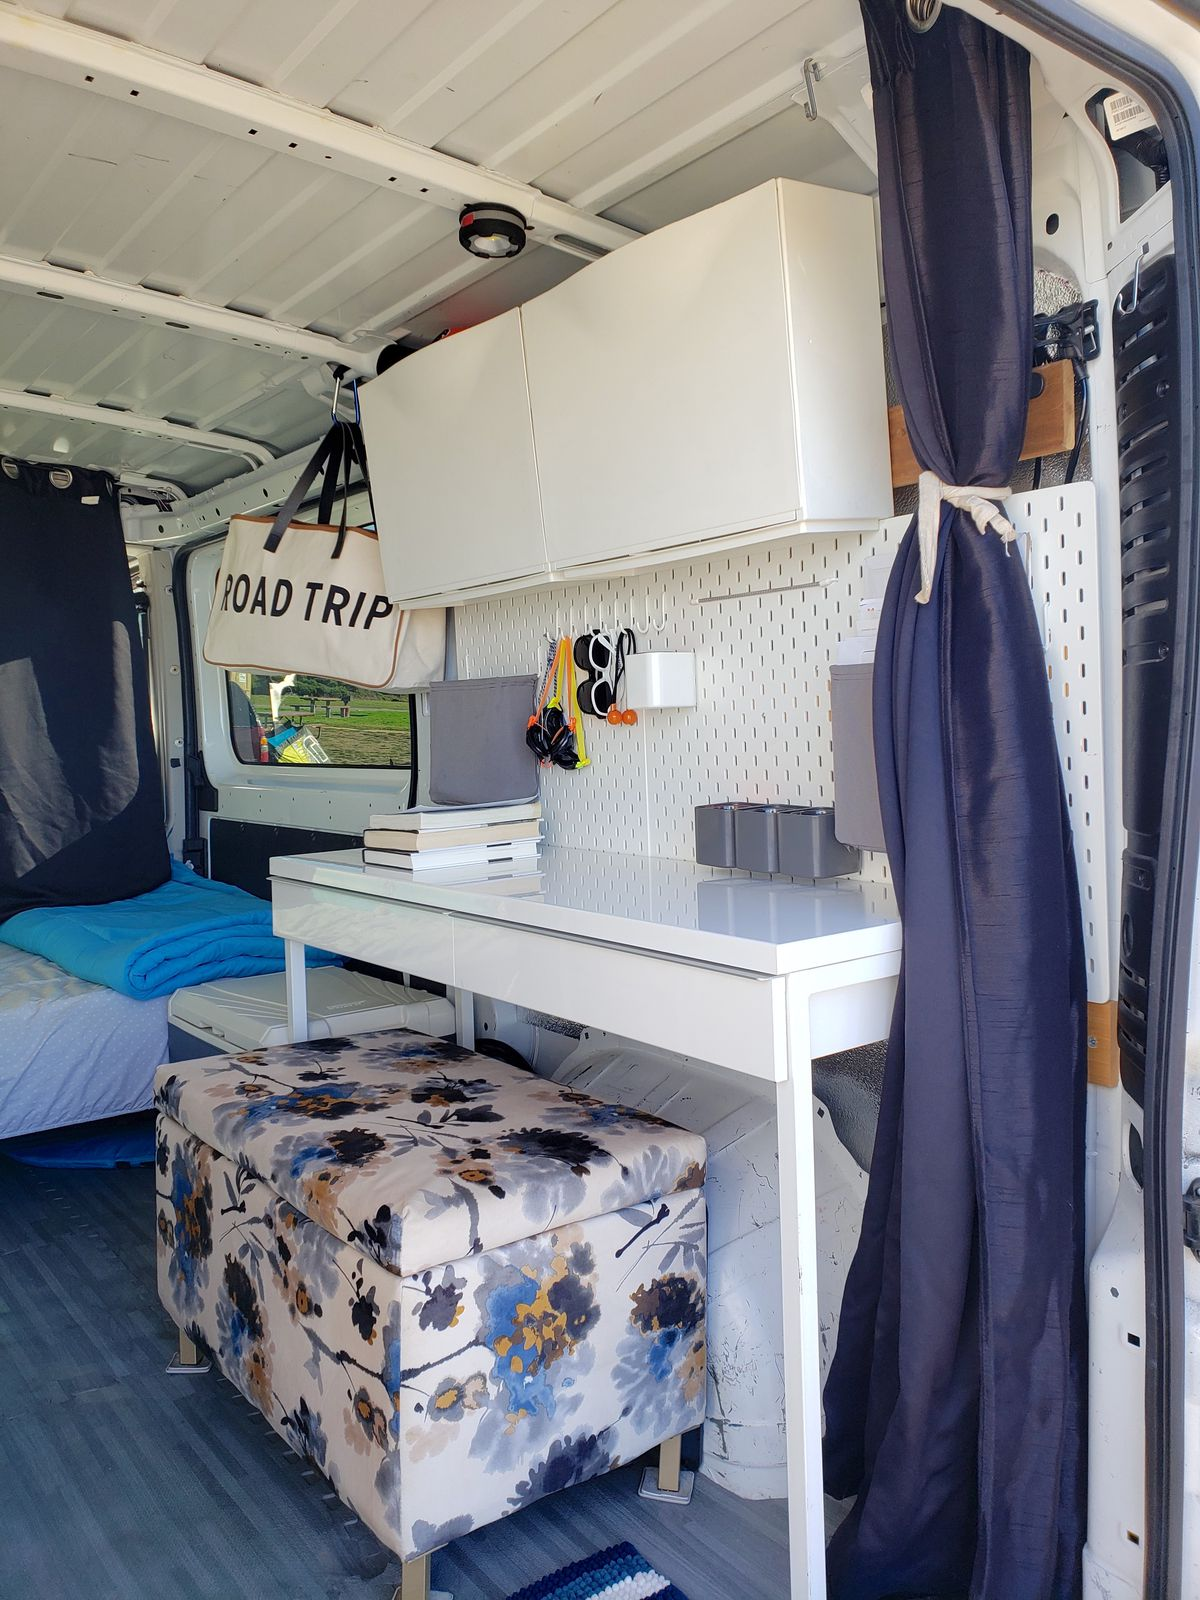 An ottoman with white Ikea desk and peg board sits inside a white camper van.